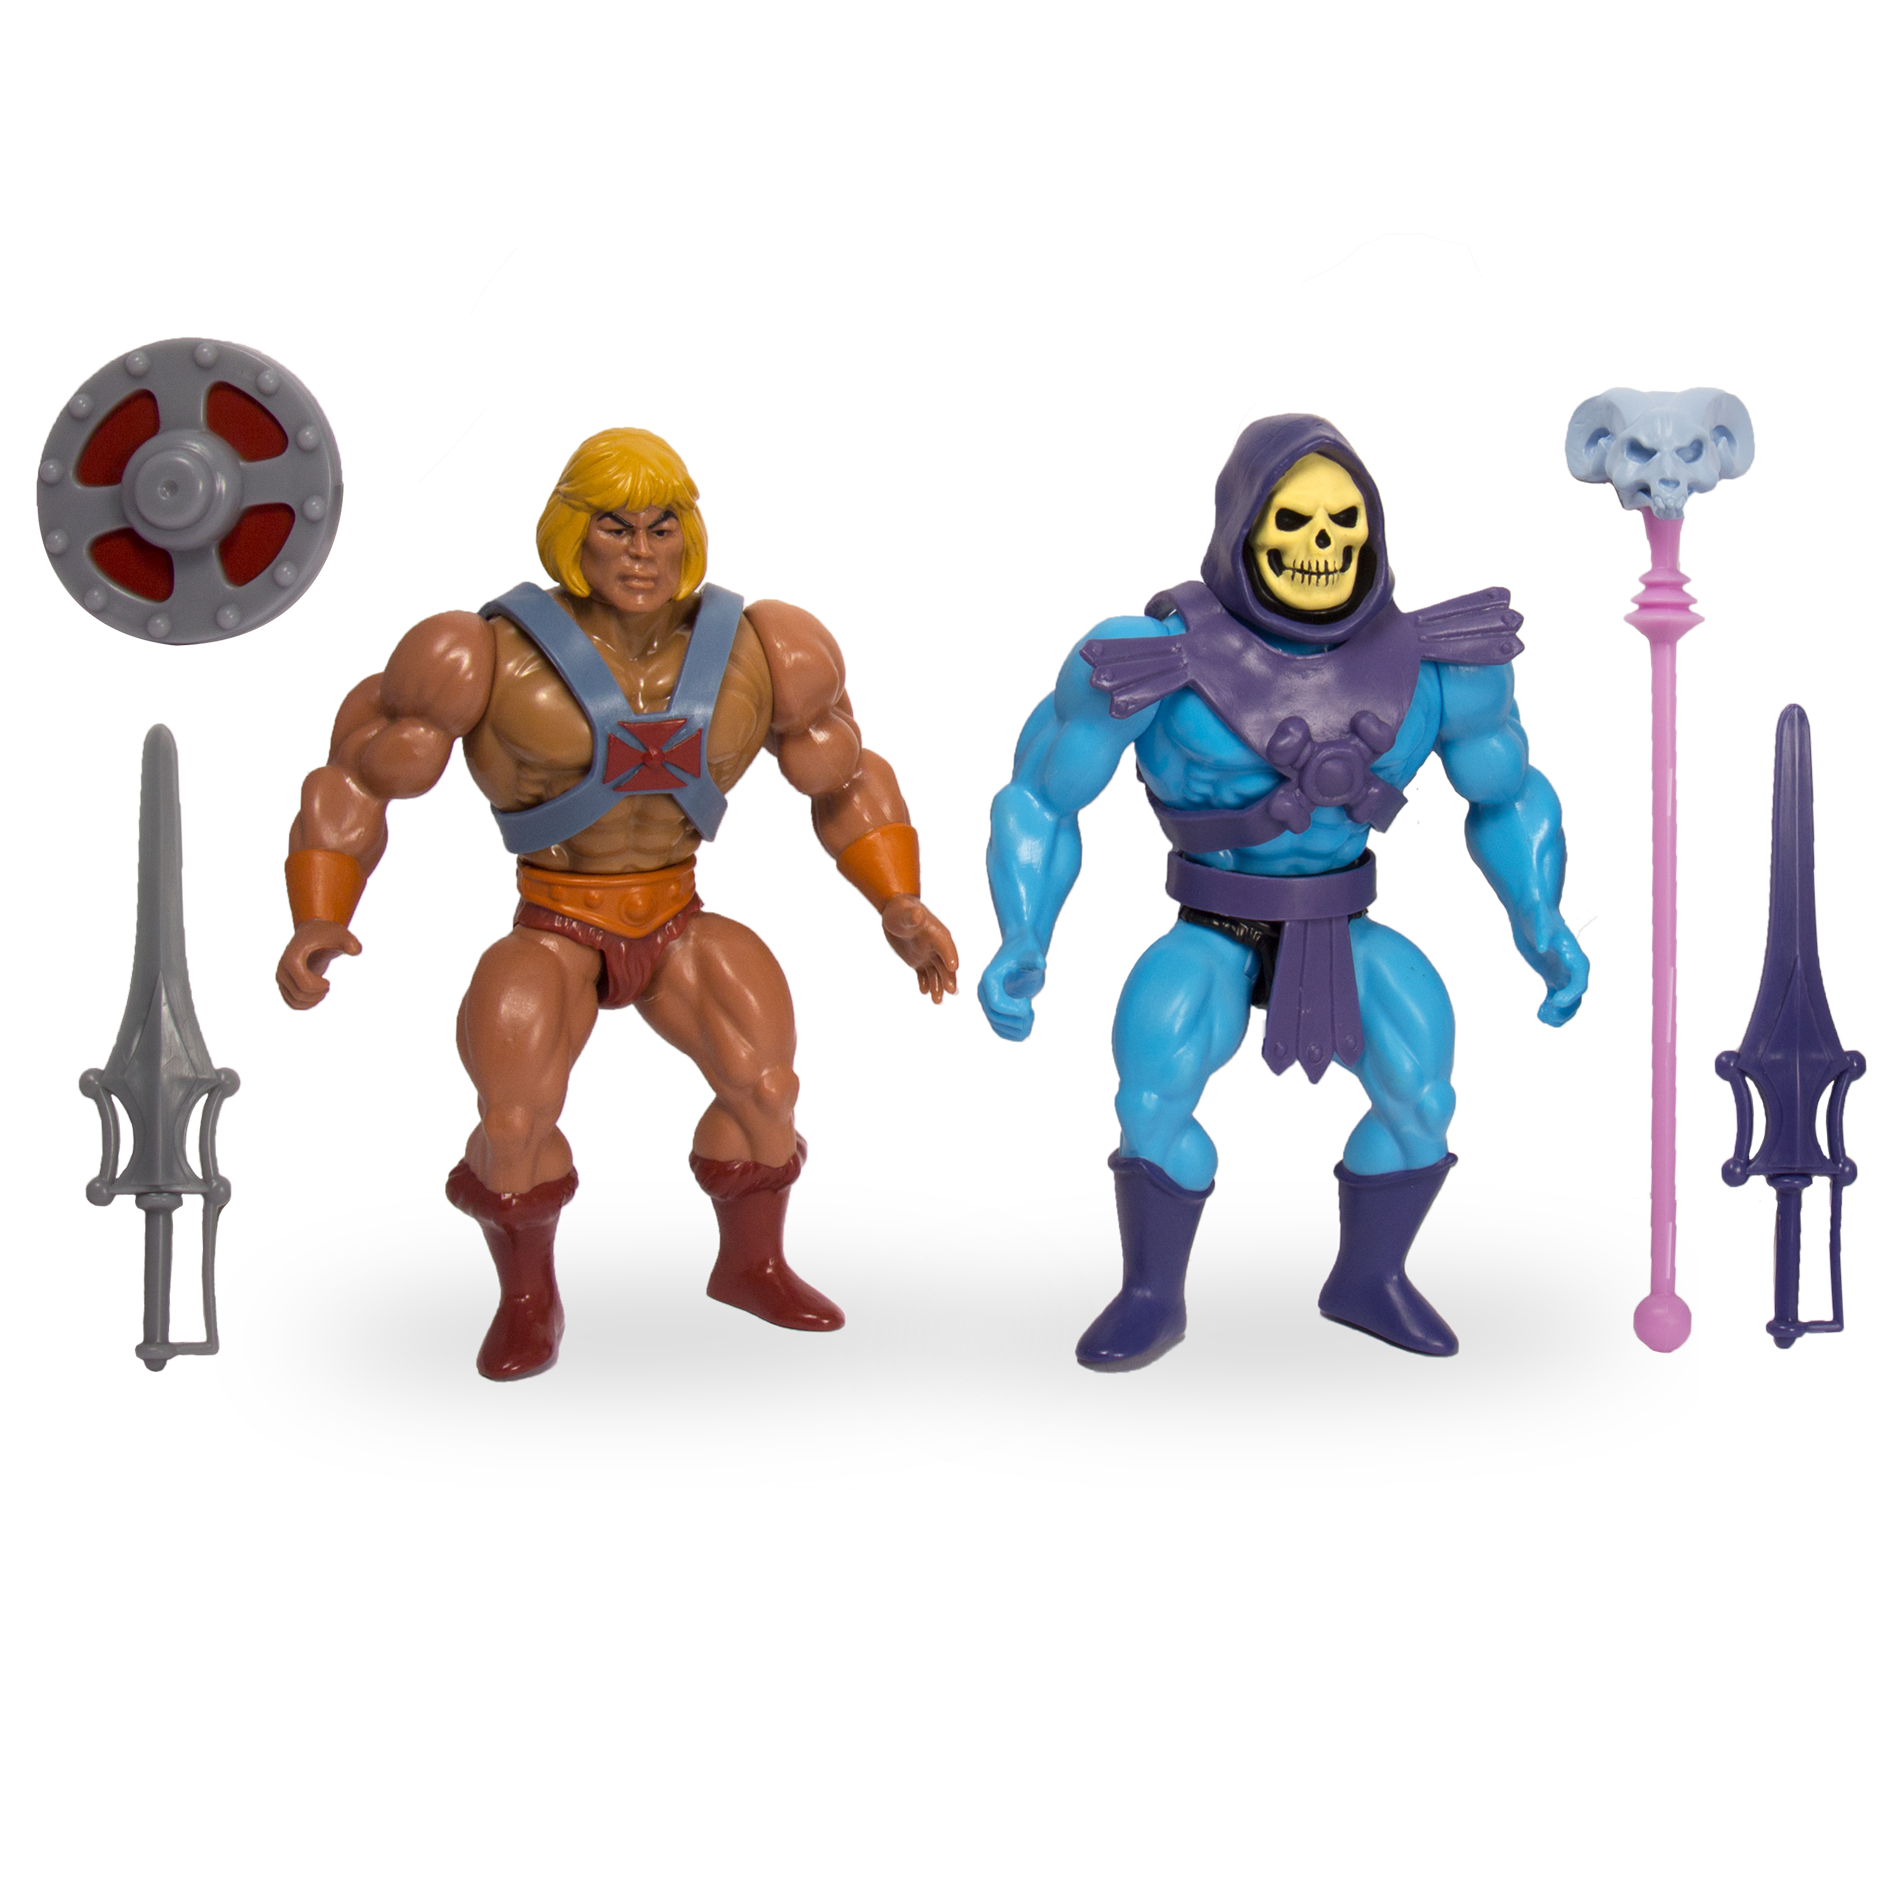 motuvintage2 packepicbattleshe manskeletor02 full e1603358936754 20 Muscle-Bound Facts About Masters Of The Universe